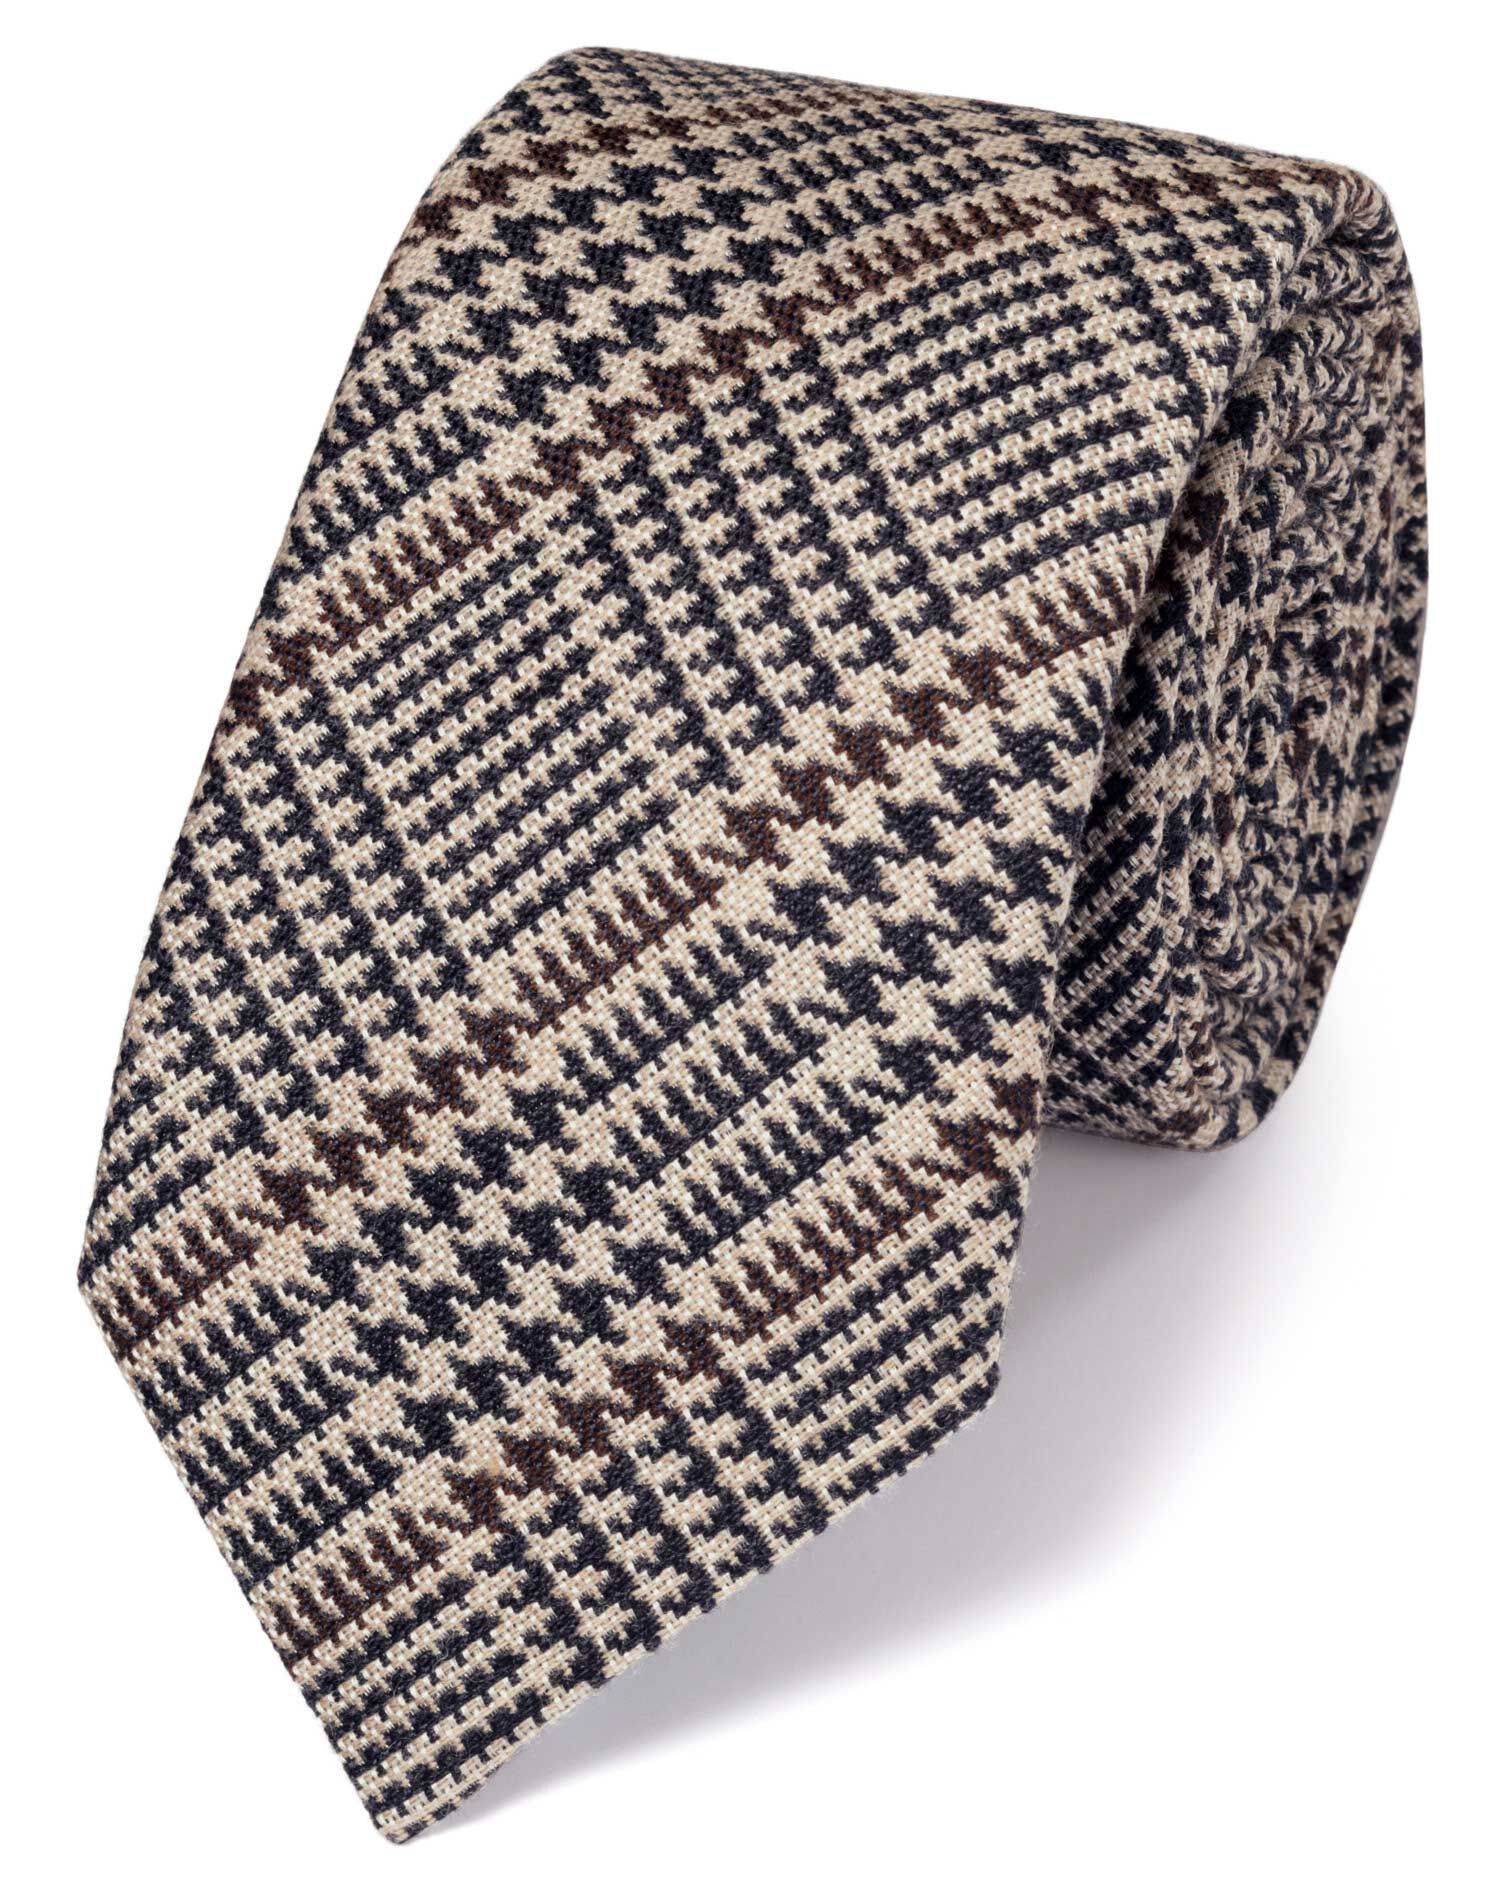 Brown Wool Mix Prince Of Wales Checkered Luxury Tie Size OSFA by Charles Tyrwhitt